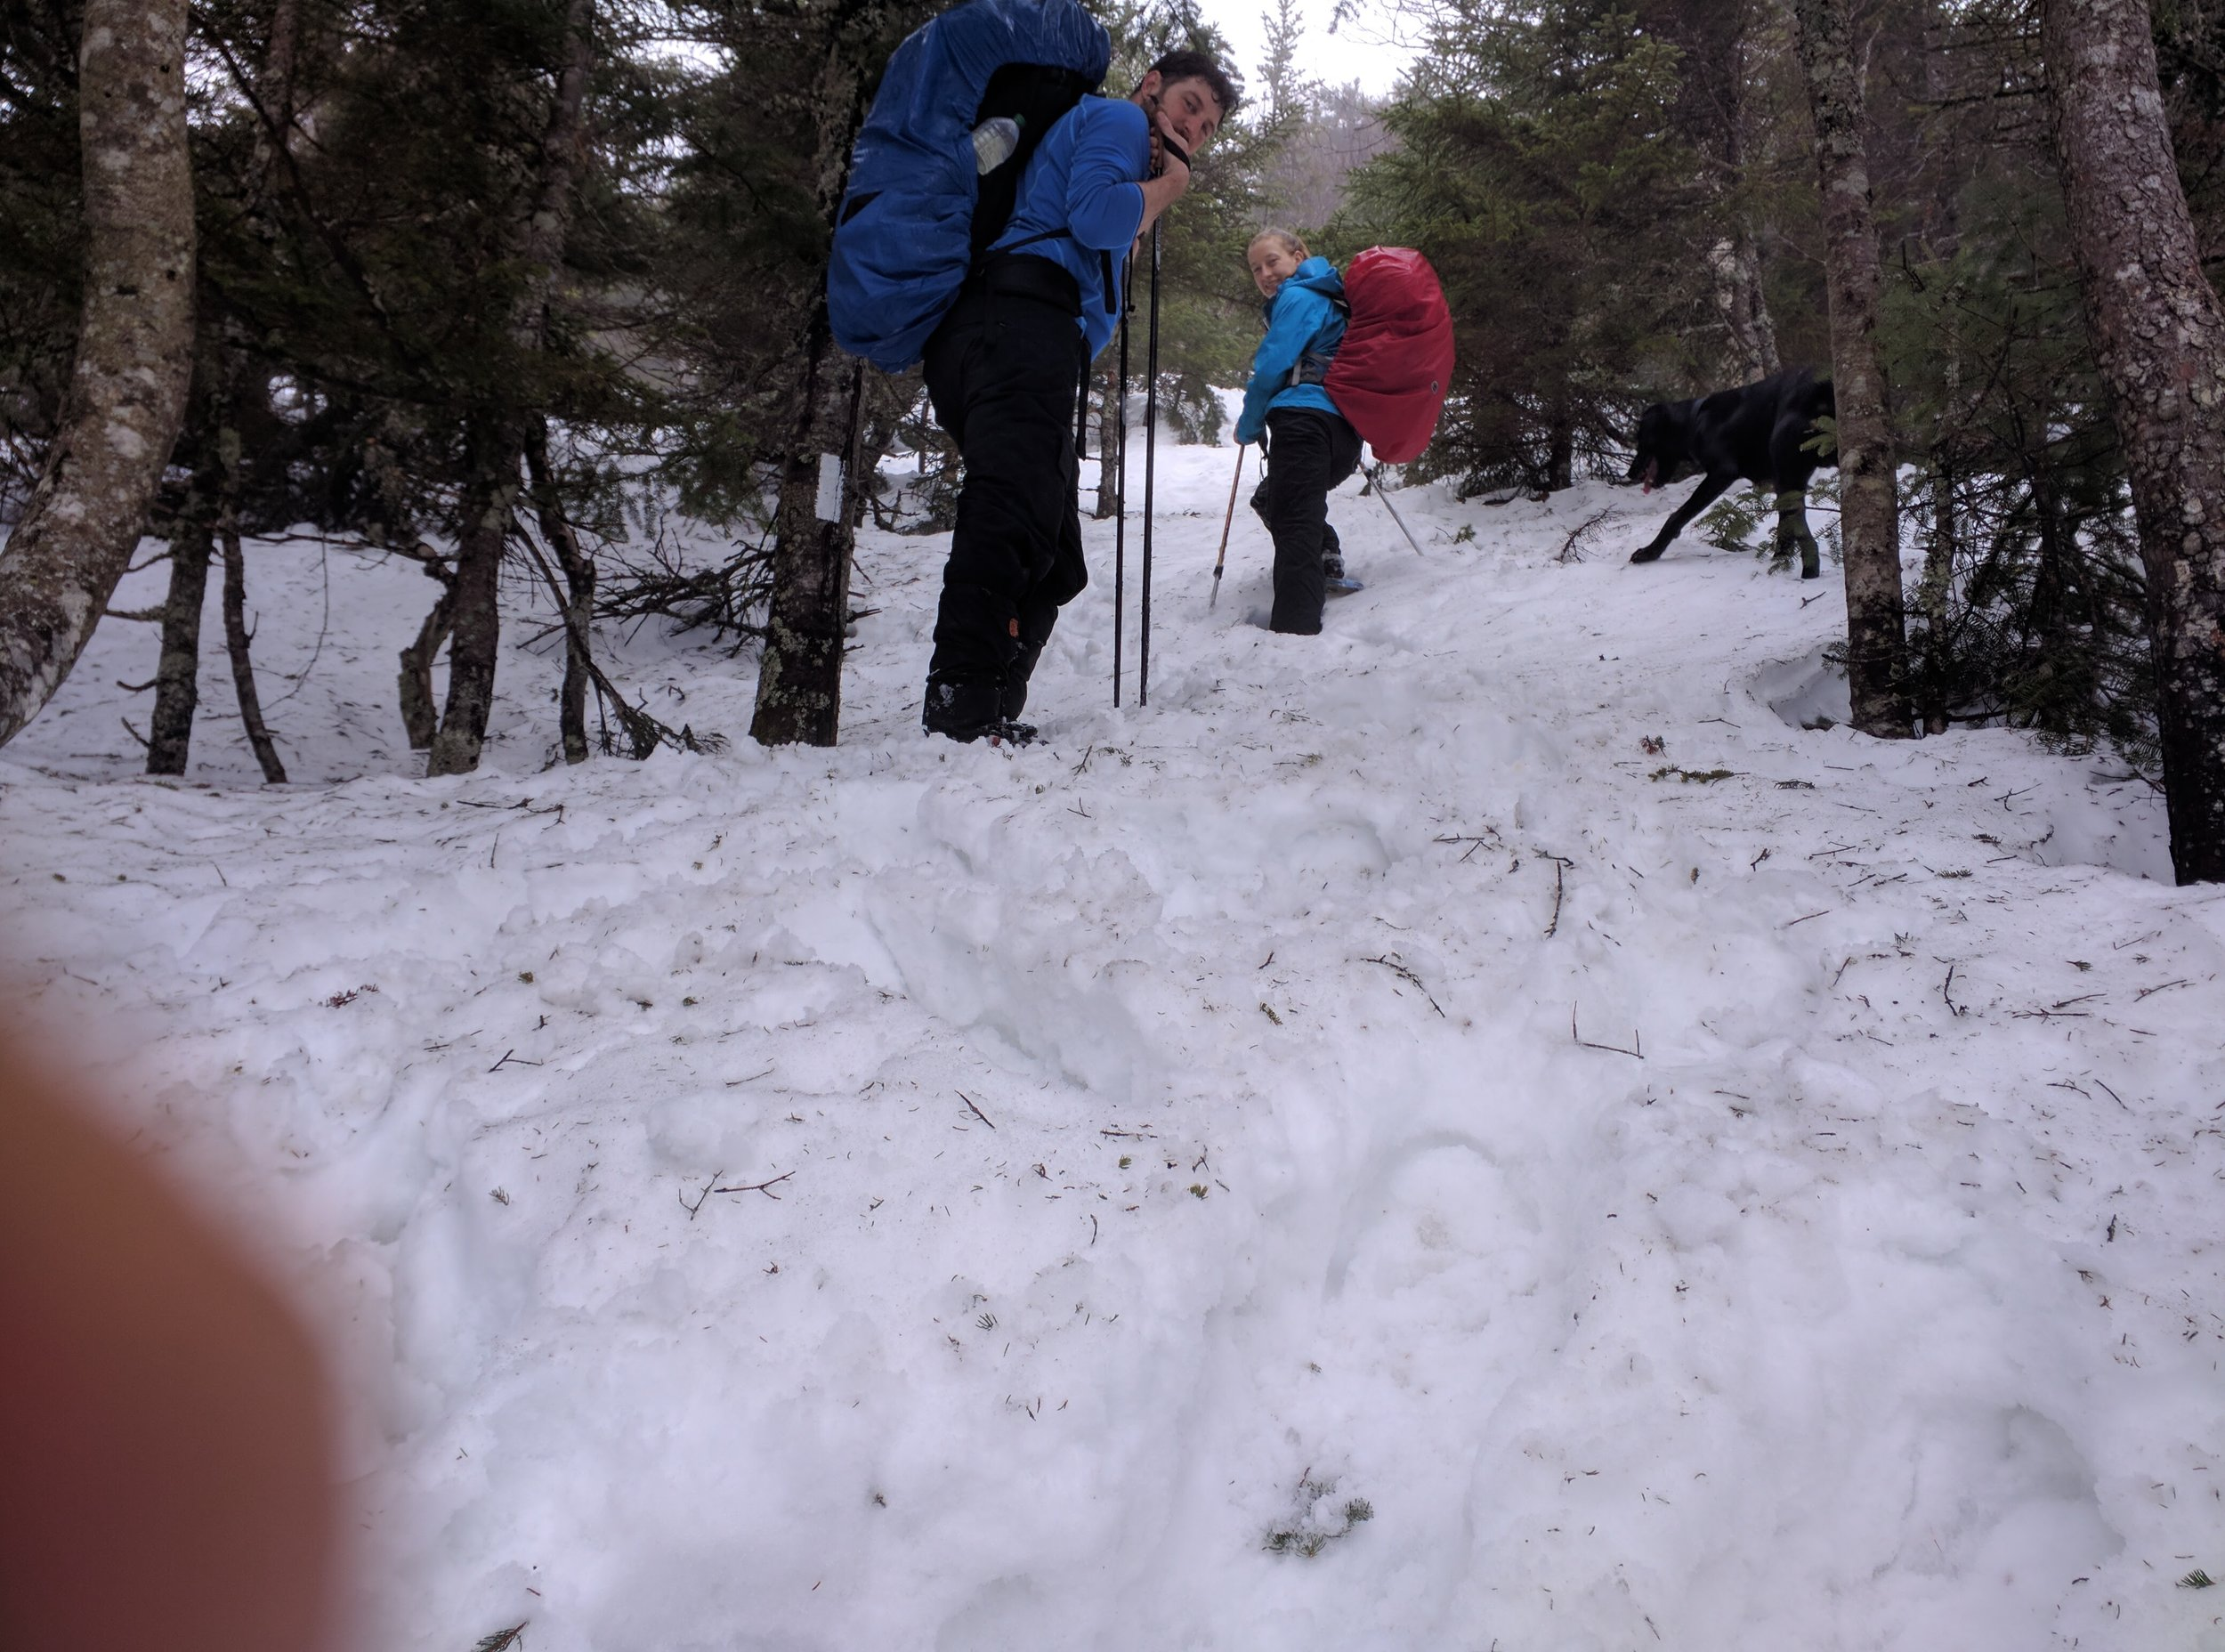 Snowshoeing up Maine's Baldpate Mountain in the winter.